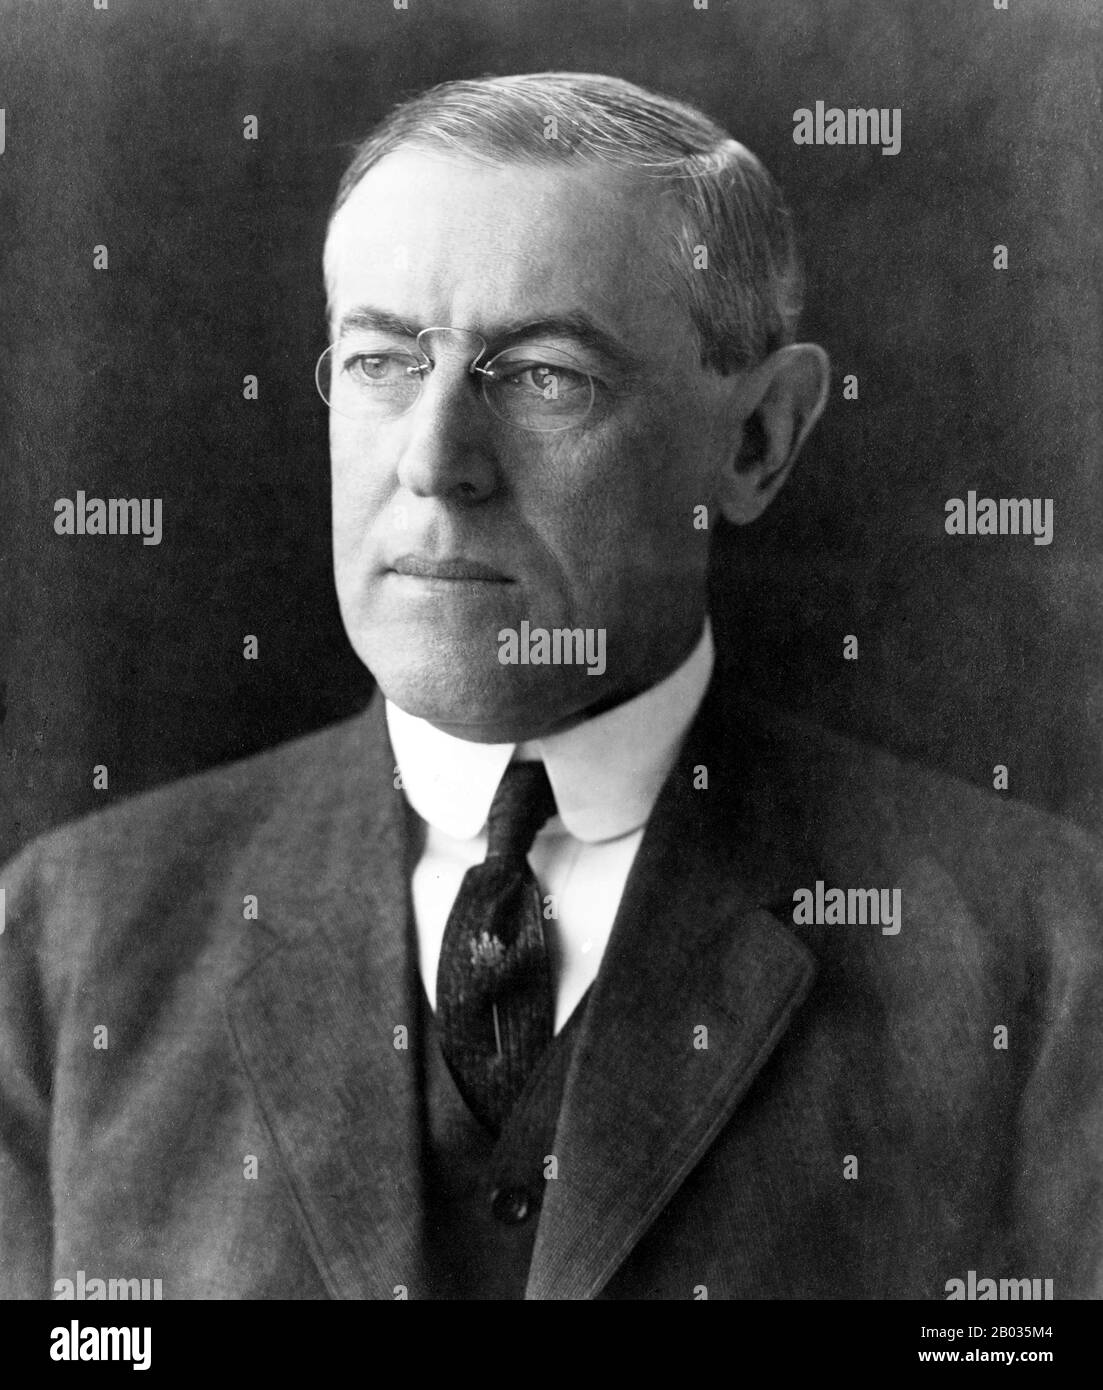 Thomas Woodrow Wilson (December 28, 1856 – February 3, 1924), better known as Woodrow Wilson, was an American politician and academic who served as the 28th President of the United States from 1913 to 1921.  In office, Wilson reintroduced the spoken State of the Union, which had been out of use since 1801. Leading the Congress, now in Democratic hands, he oversaw the passage of progressive legislative policies unparalleled until the New Deal in 1933.  A devoted Presbyterian, Wilson infused a profound sense of moralism into his internationalism, now referred to as 'Wilsonian'—a contentious posi Stock Photo